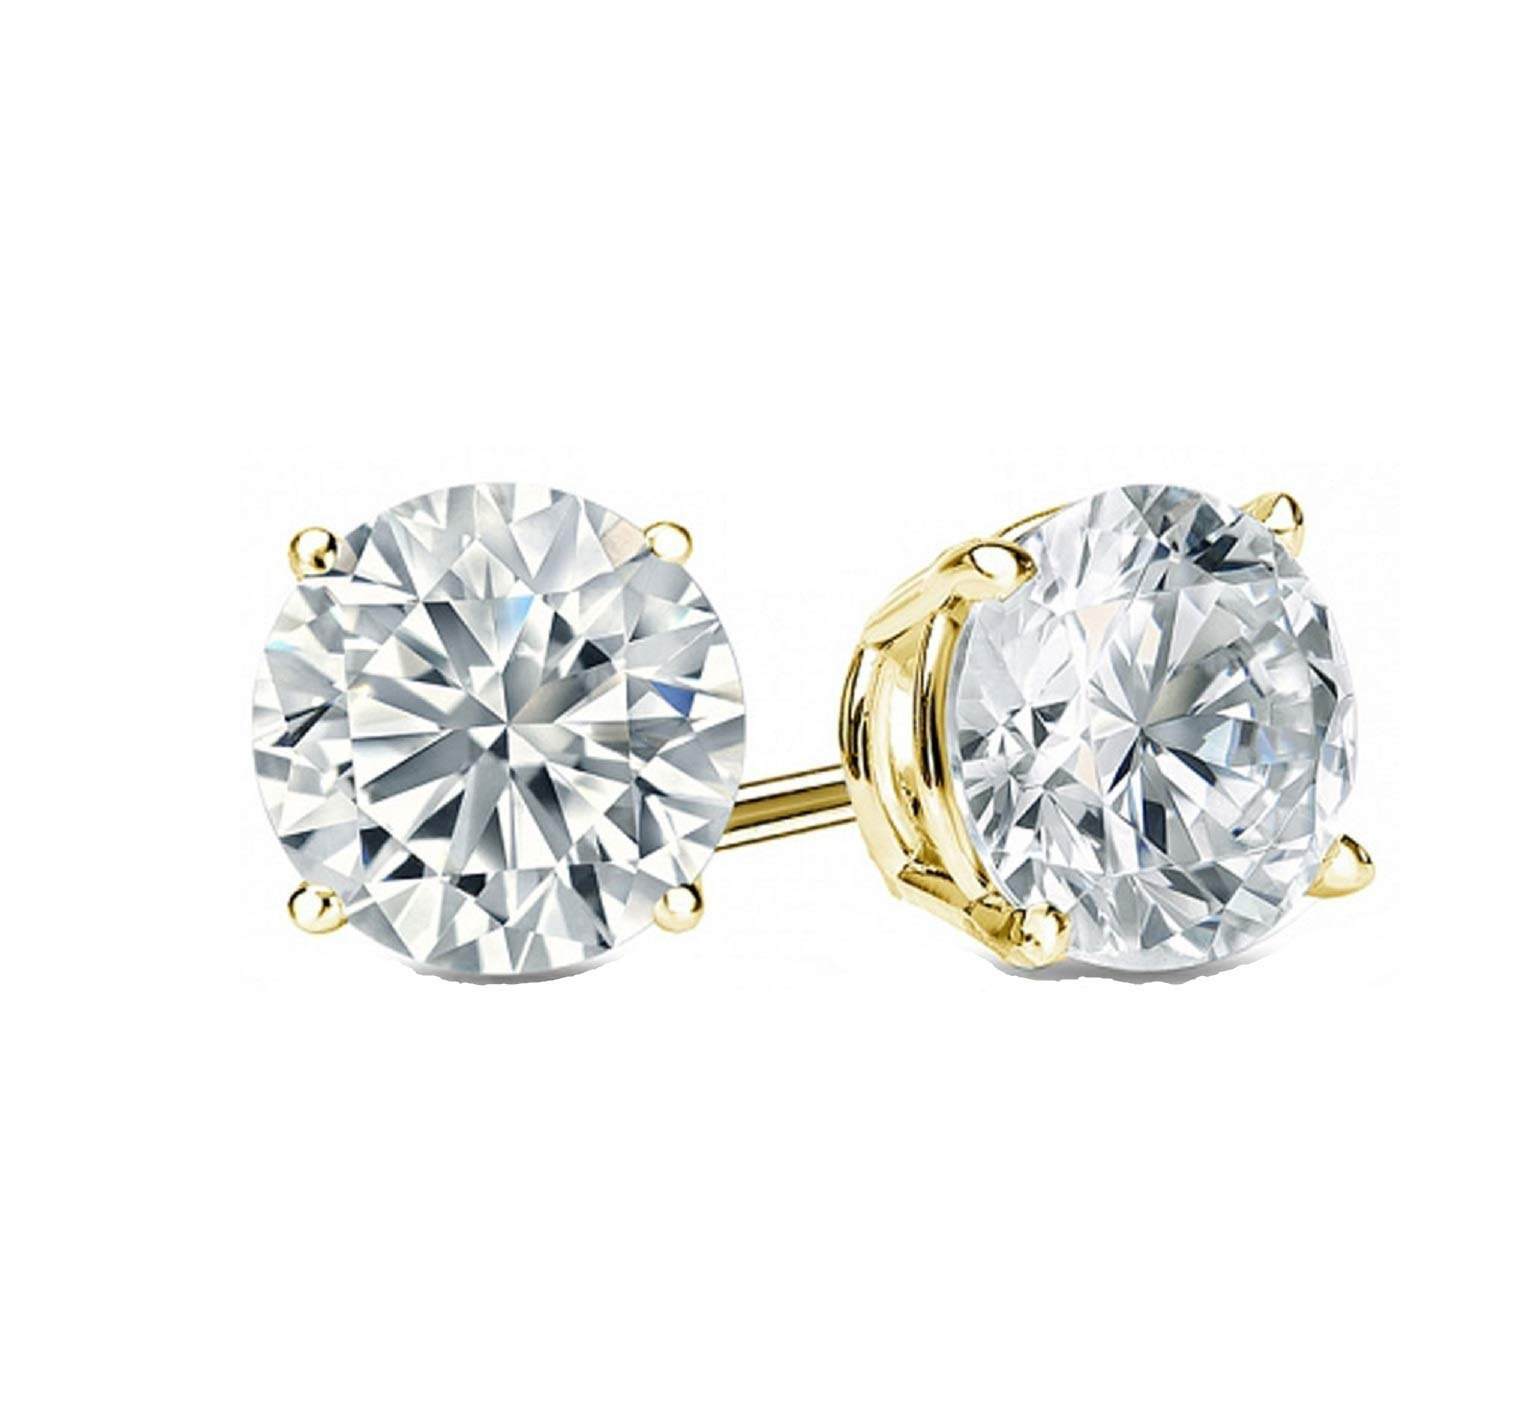 2.0 ct Round Brilliant Cut Simulated Diamond CZ Solitaire Stud Earrings in 14k Yellow Gold Push Back by Clara Pucci (Image #1)